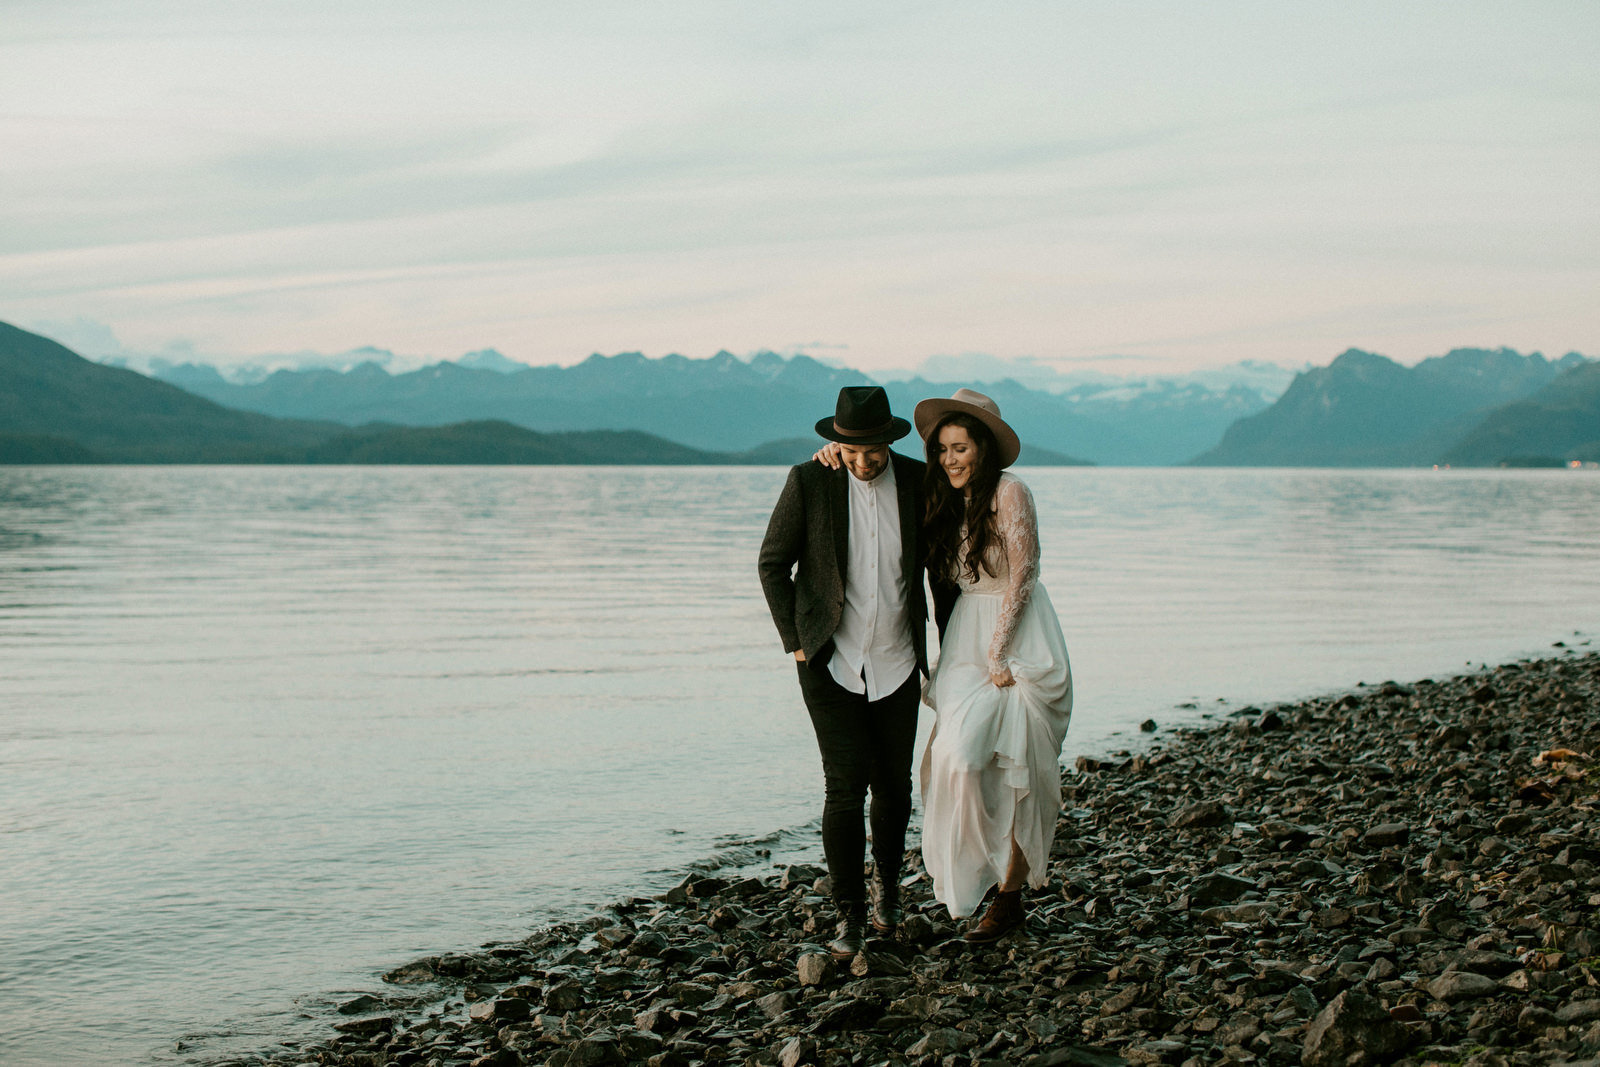 athena-and-camron-alaska-elopement-wedding-inspiration-india-earl-athena-grace-glacier-lagoon-wedding64